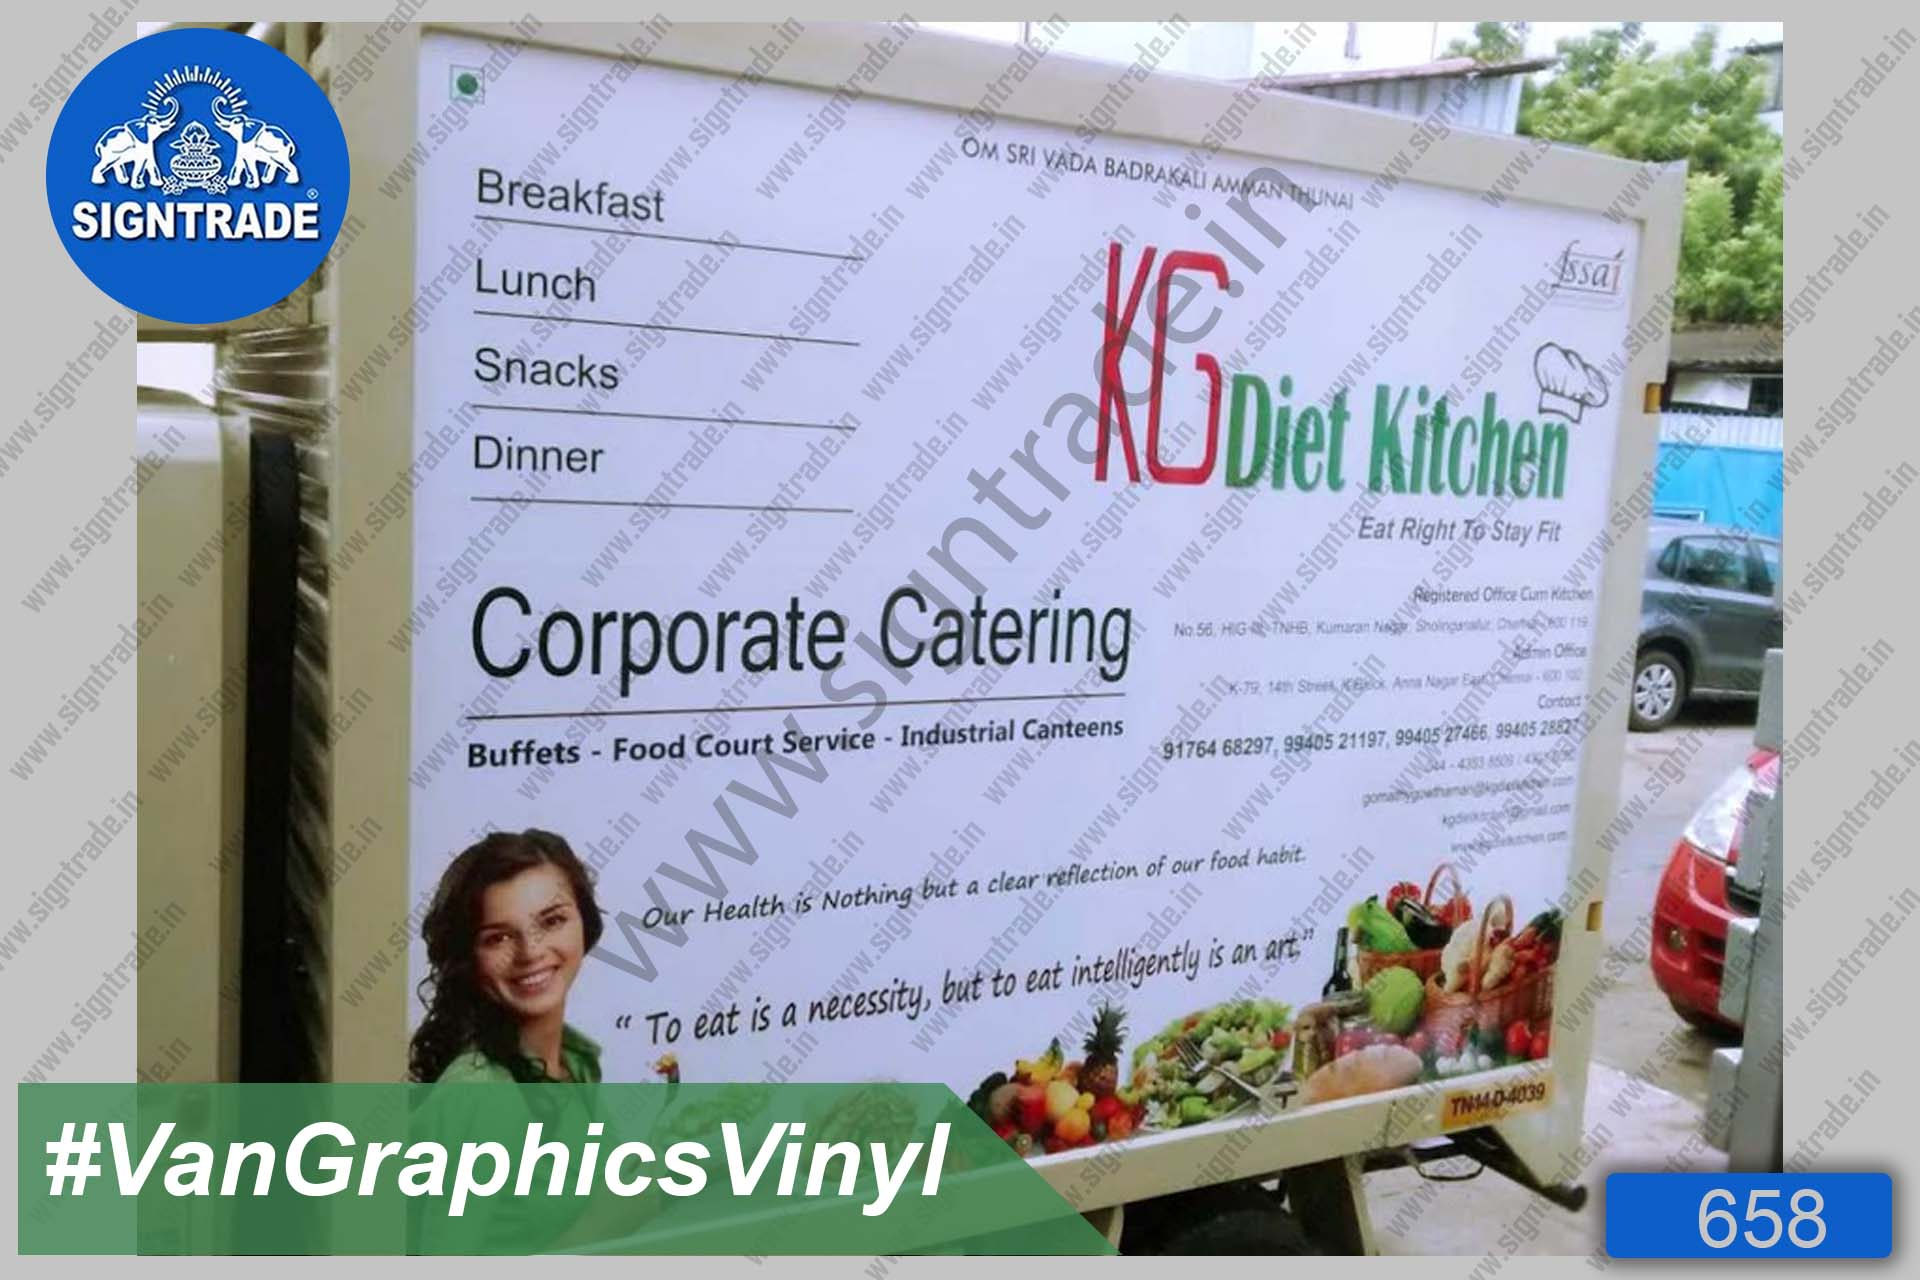 KG Diet Kitchen - Corporate Catering - Chennai